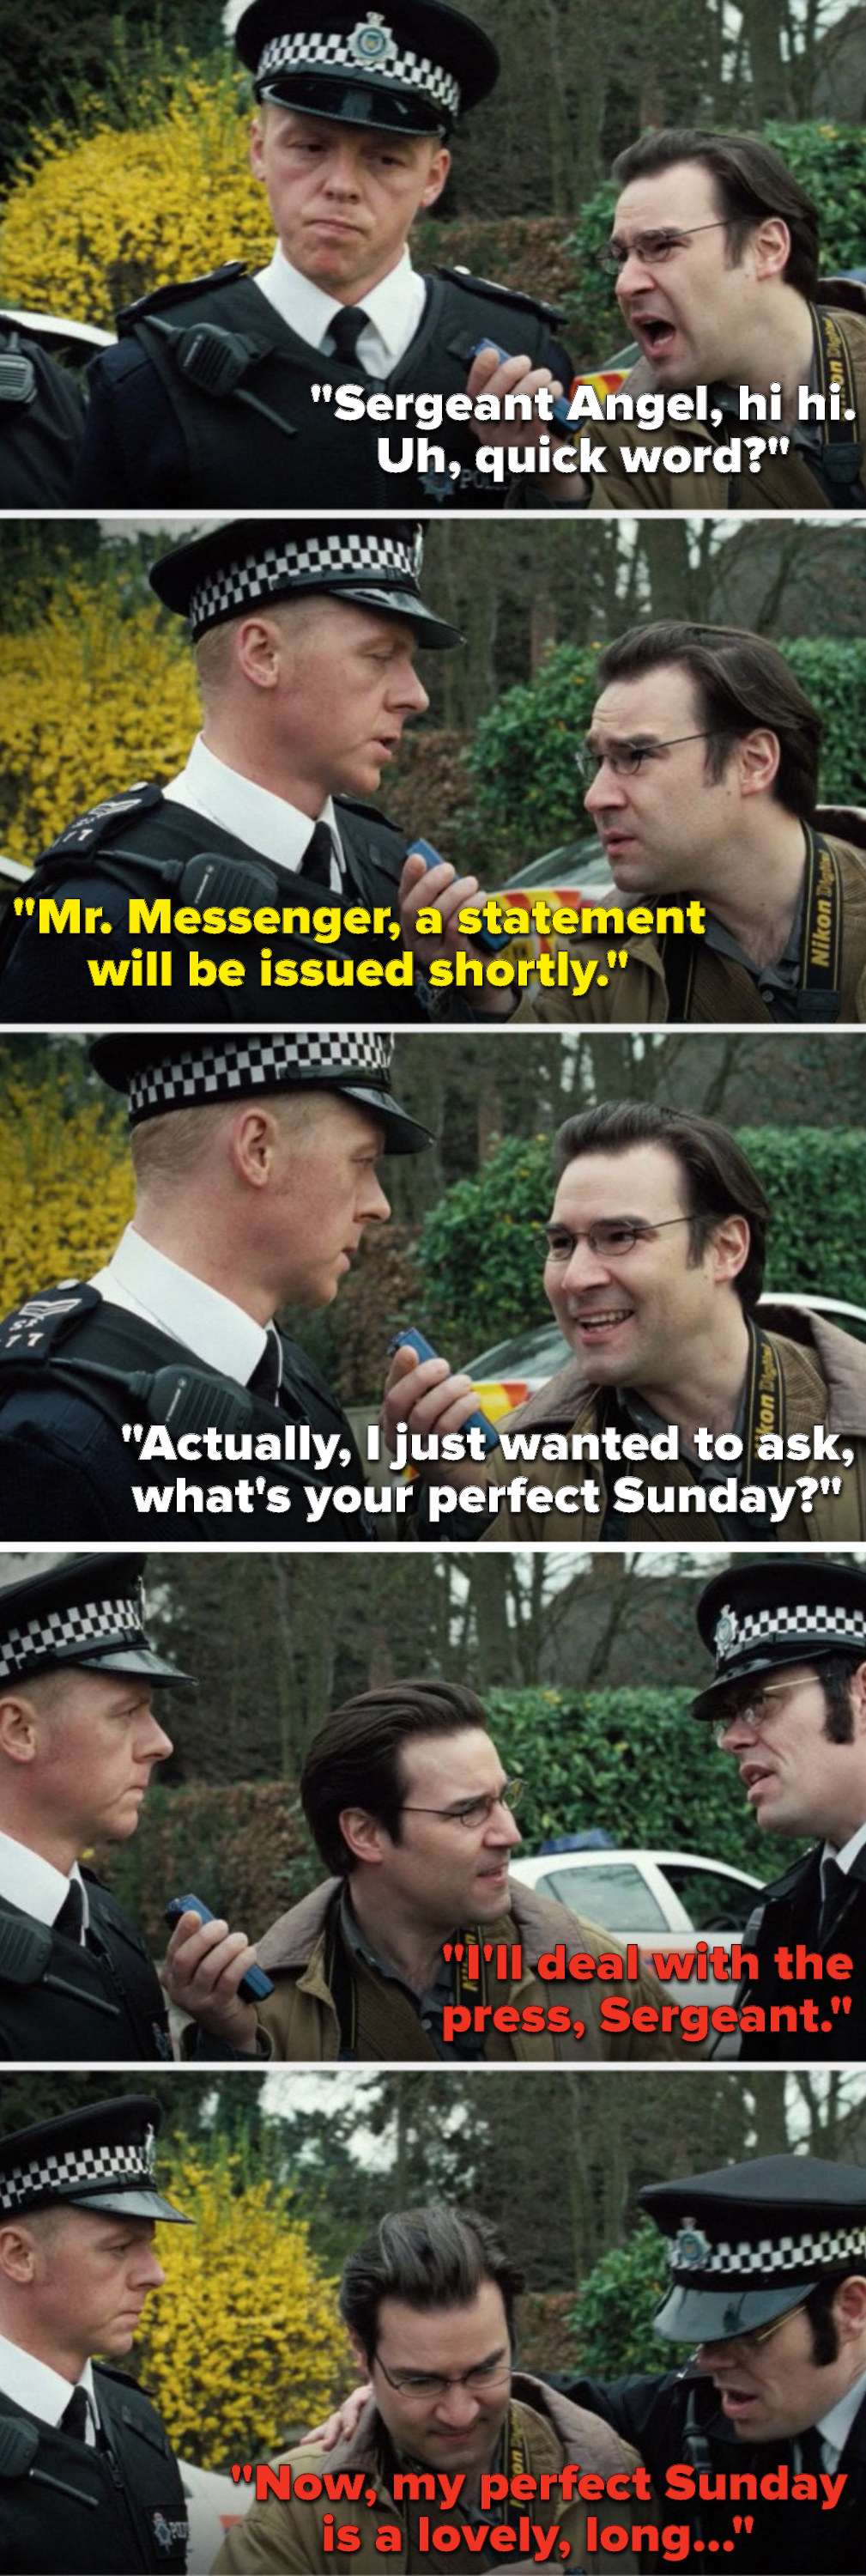 """Messenger says, """"Angel, quick word,"""" Angel says, """"A statement will be issued shortly,"""" Messenger says, """"I just wanted to ask, what's your perfect Sunday,"""" Sergeant Fisher says, """"I'll deal with the press, my perfect Sunday is a lovely, long dot dot dot"""""""